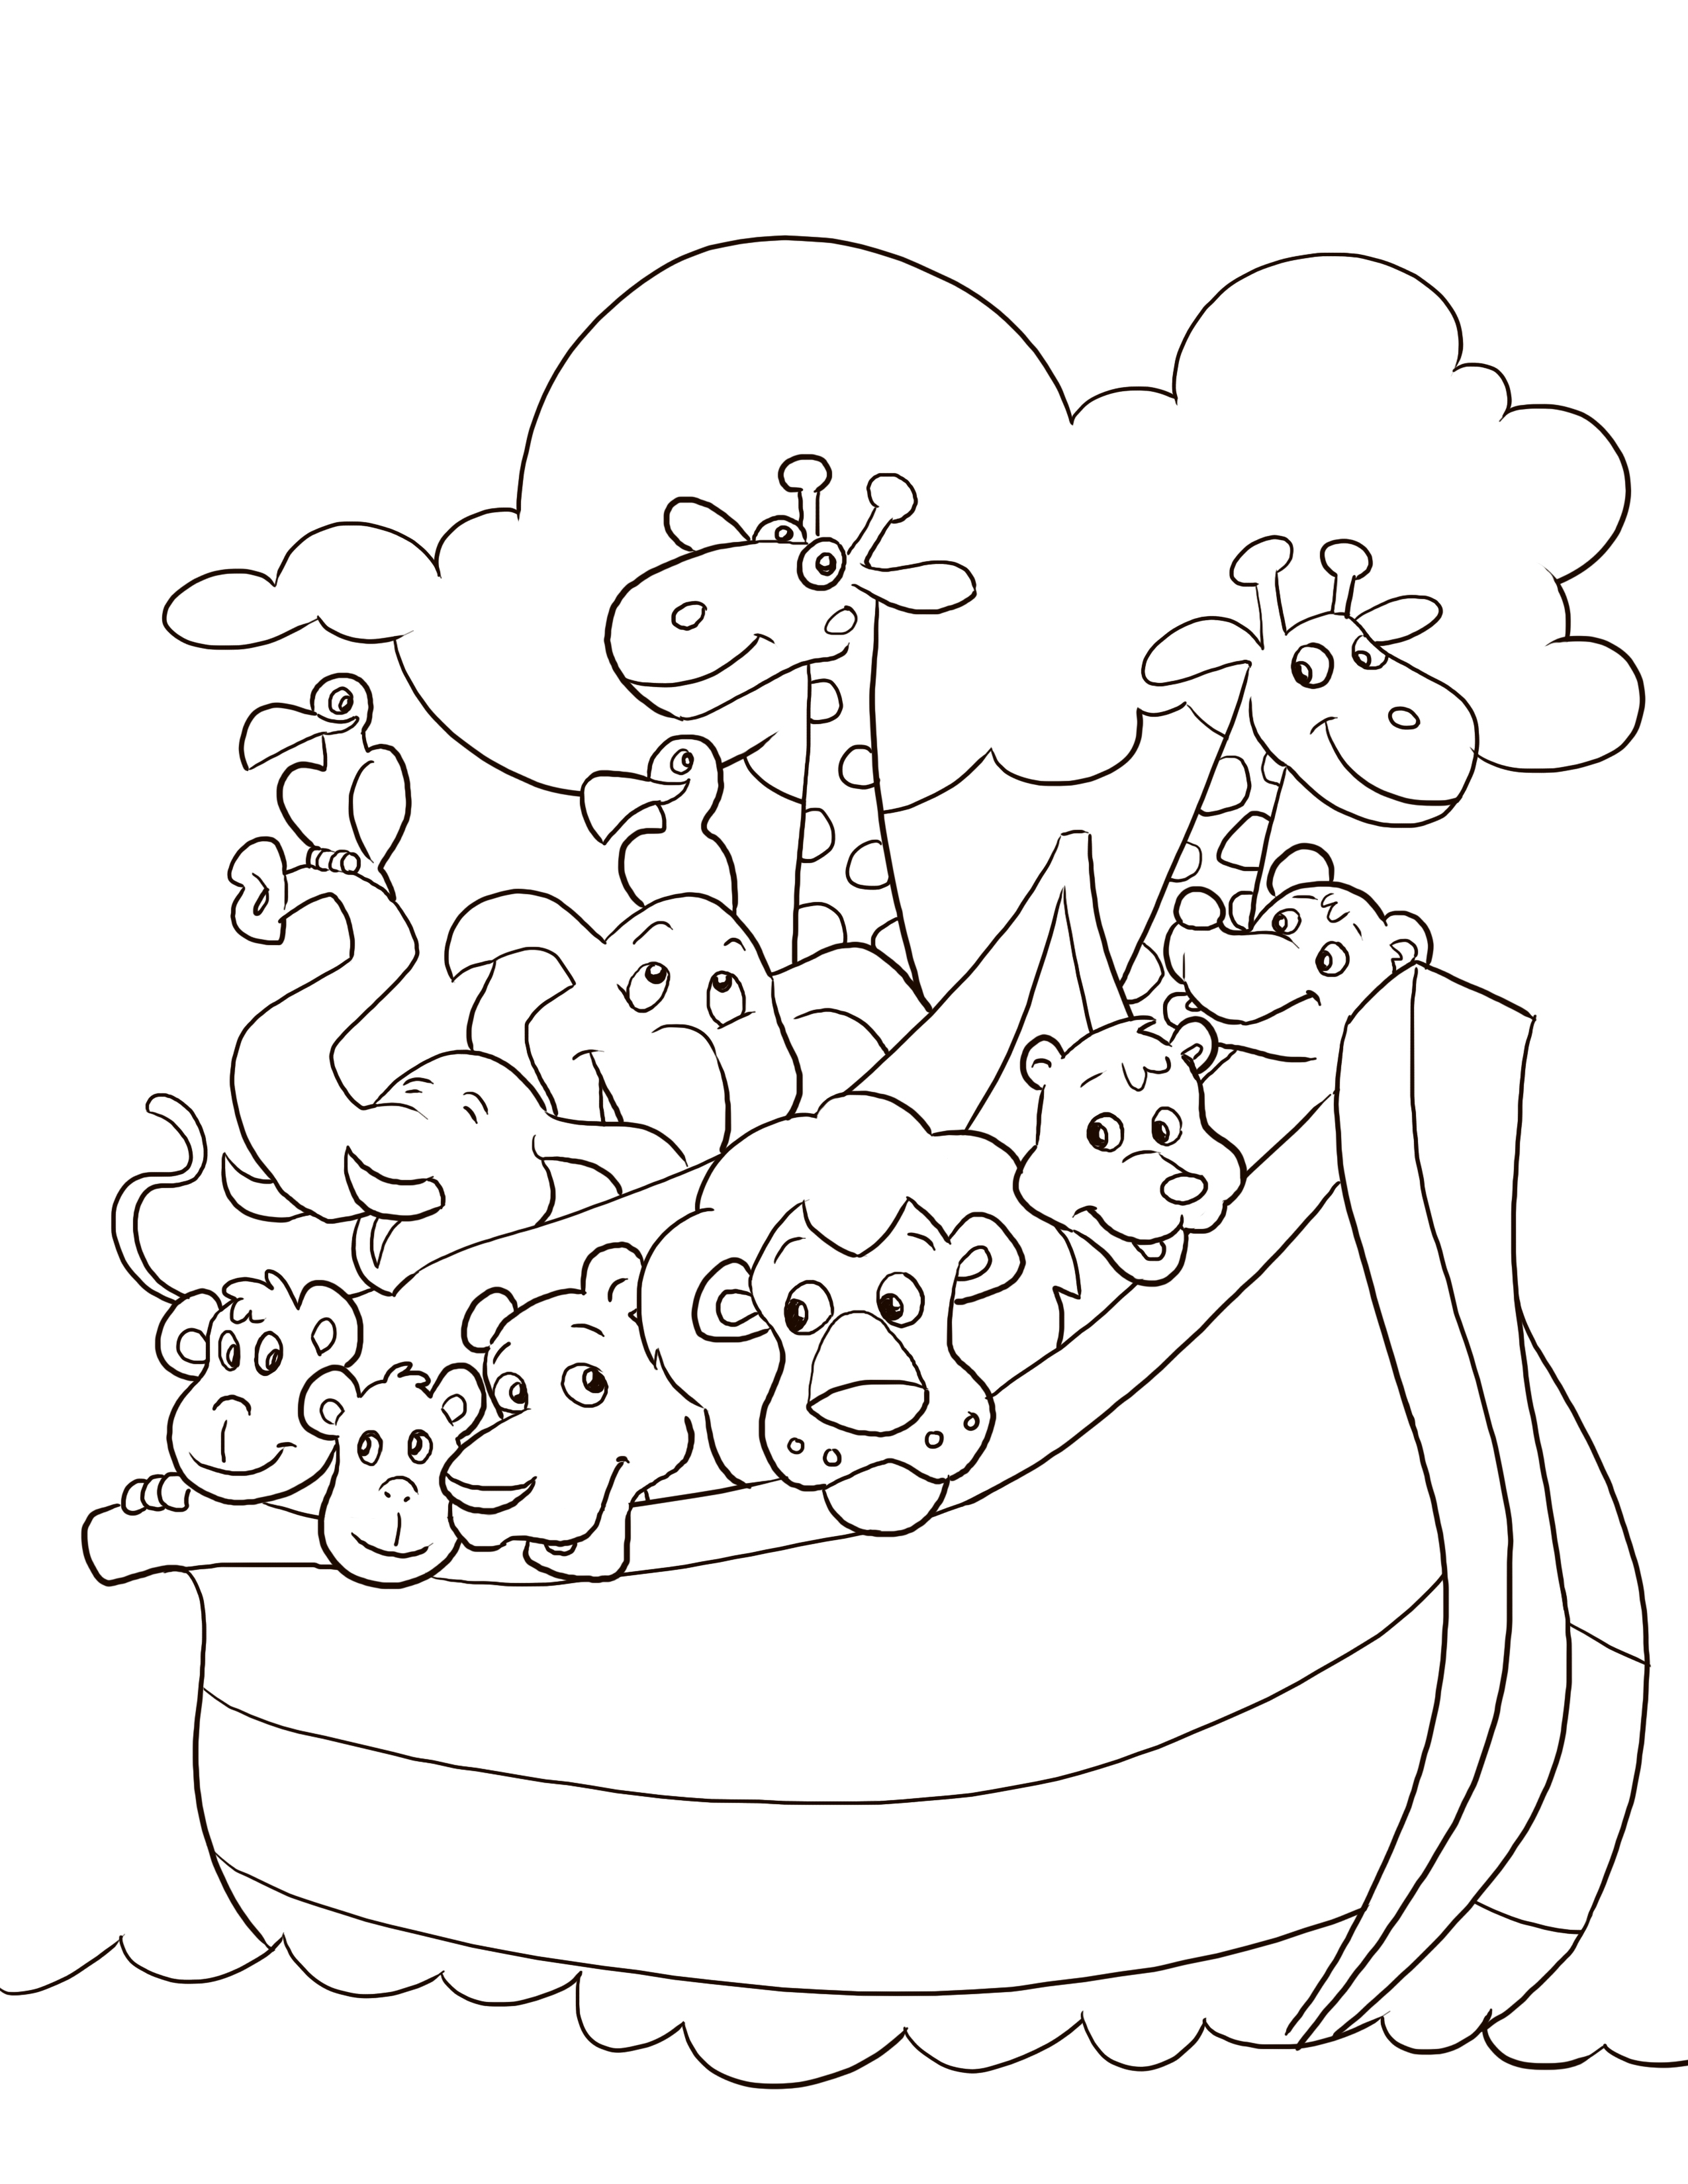 27 Noahs Ark Printable Coloring Pages Printable FREE COLORING